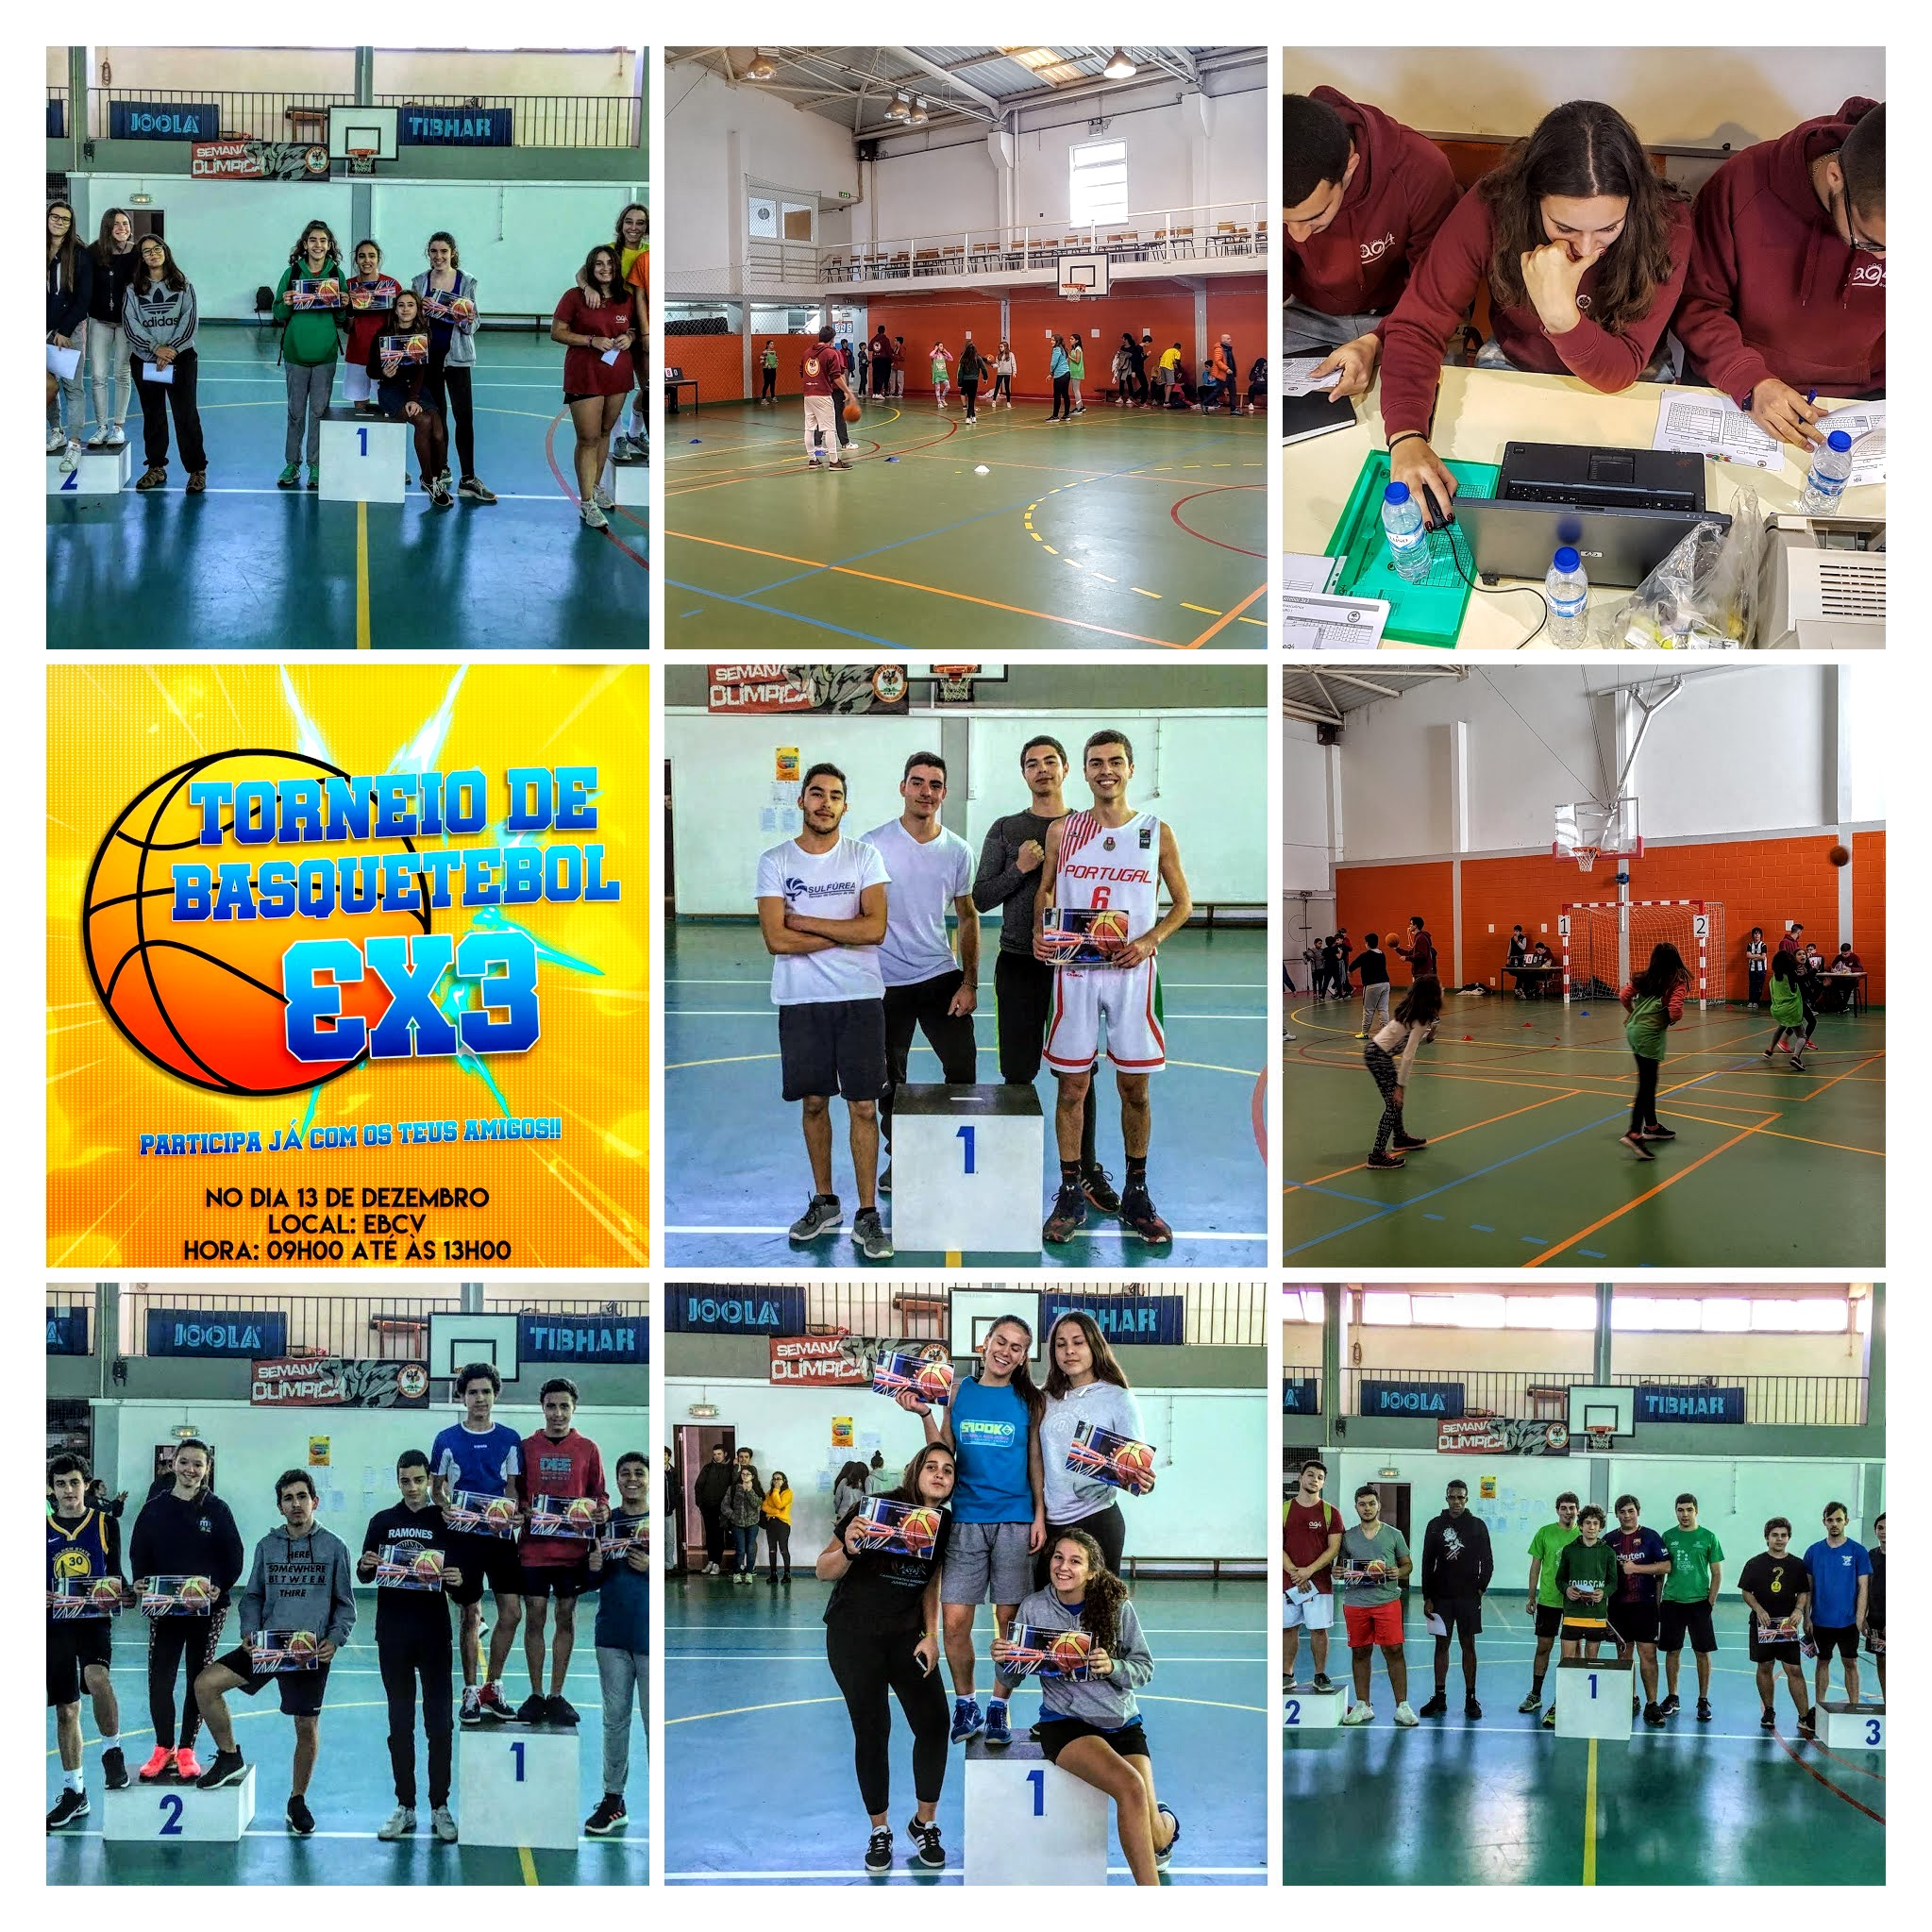 Torneio de Basquetebol 3x3 COLLAGE